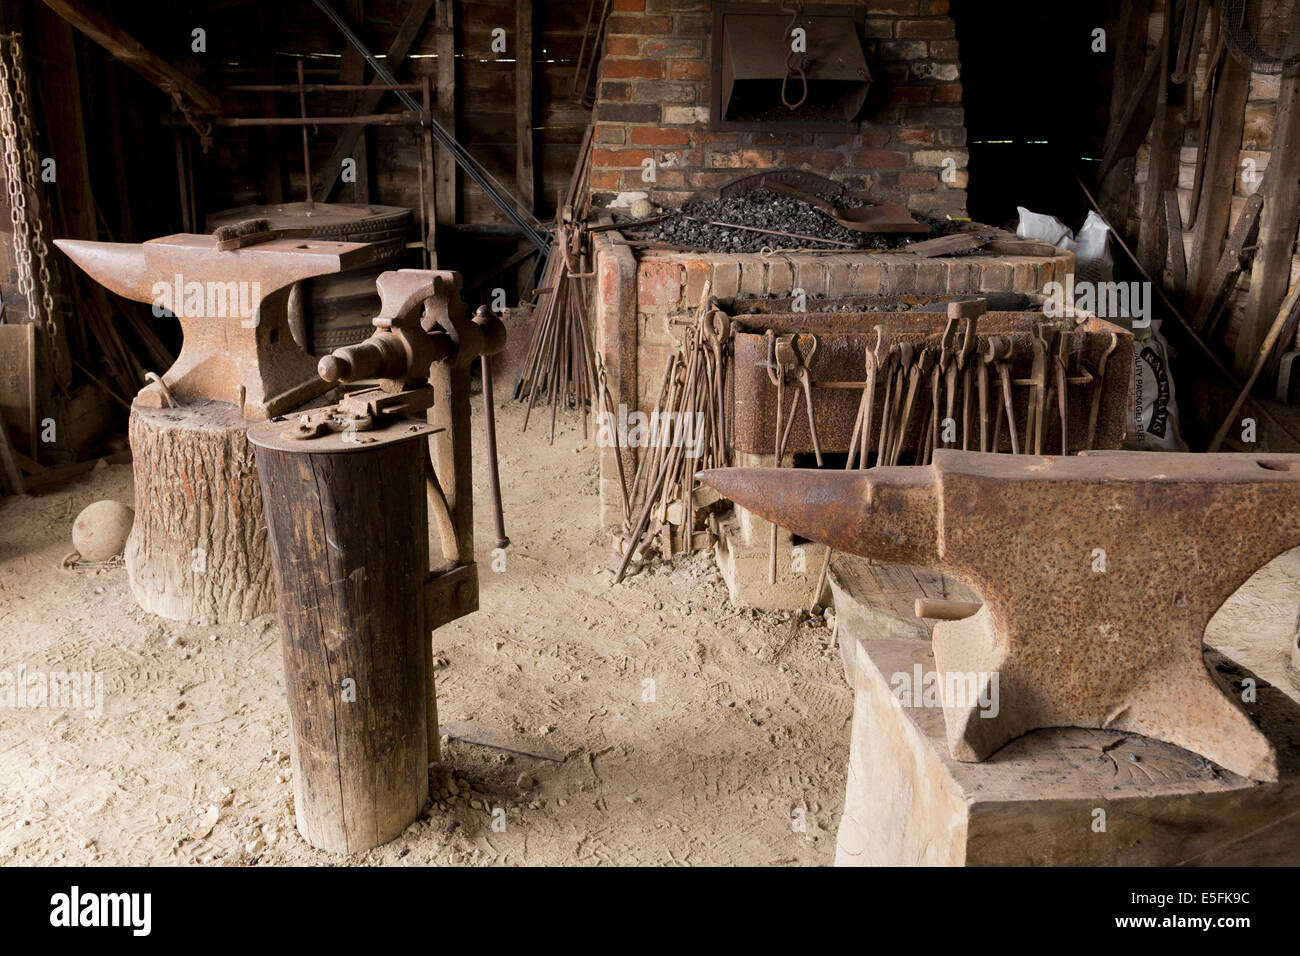 Blacksmith's forge in museum of East Anglian life, Suffolk - Stock Image